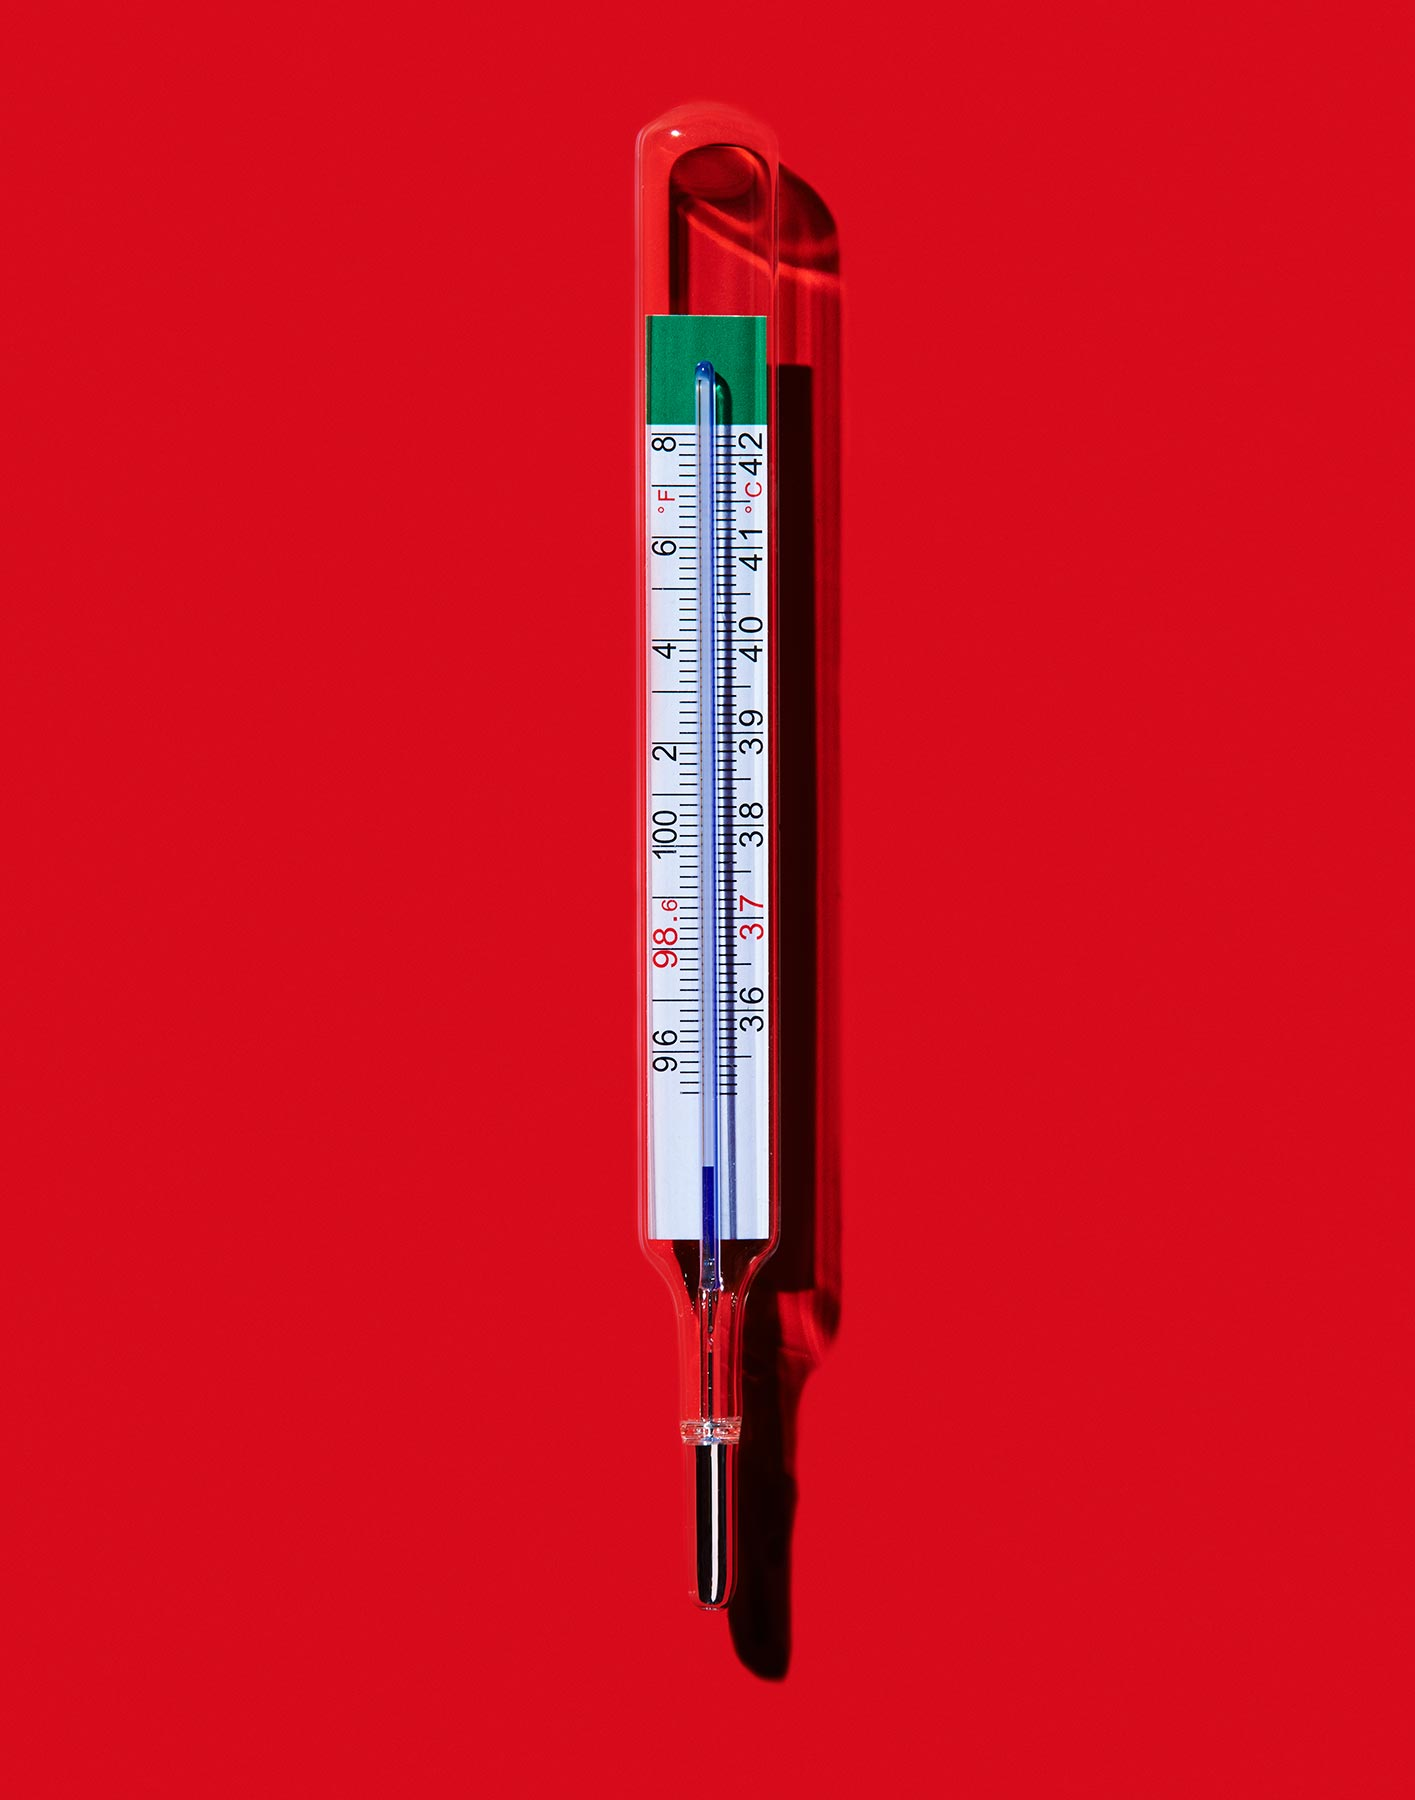 thermometer on bright red surface  by Ted Cavanaugh